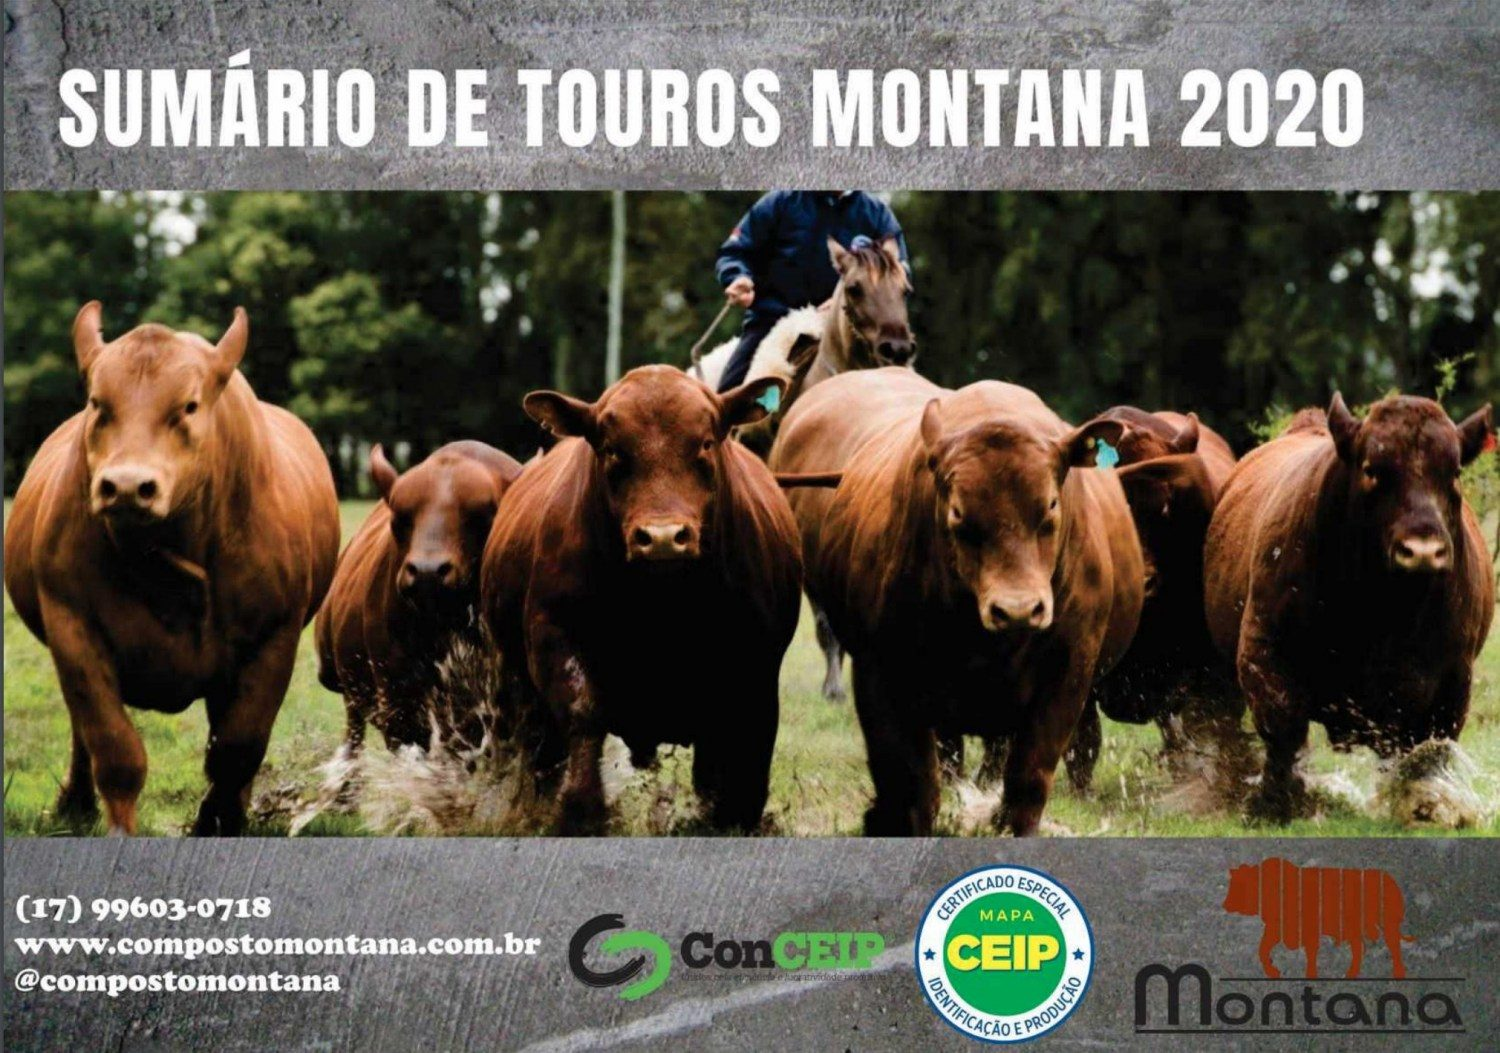 capa do sumario de touros montana 2020